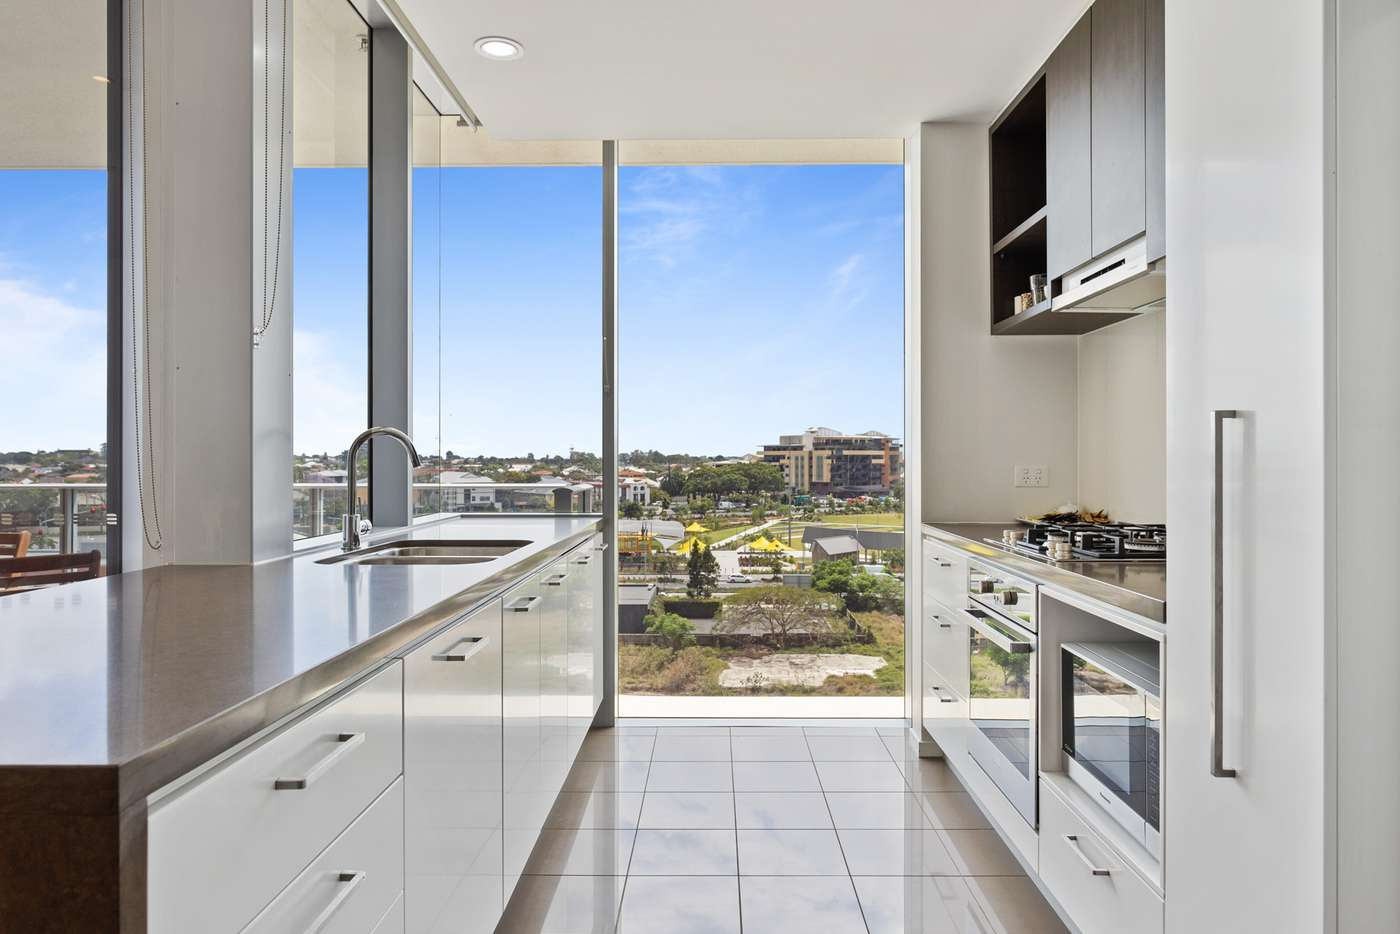 Main view of Homely apartment listing, 4014/37c Harbour Road, Hamilton QLD 4007